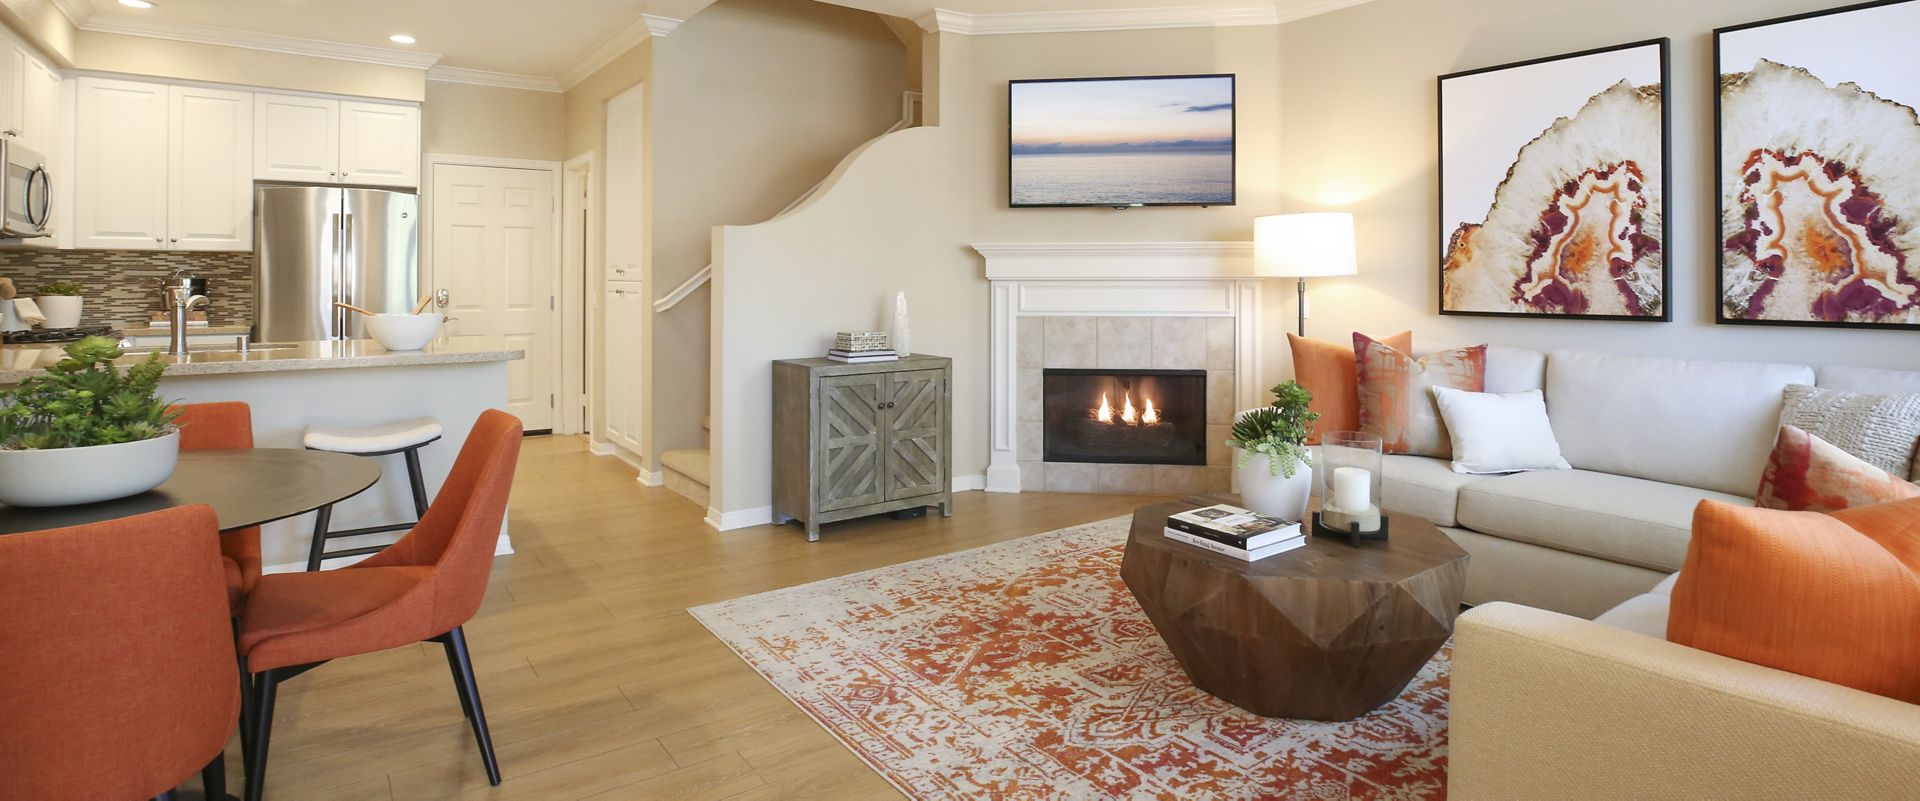 Interior view of living room and dining room at Bordeaux Apartment Homes in Newport Beach, CA.